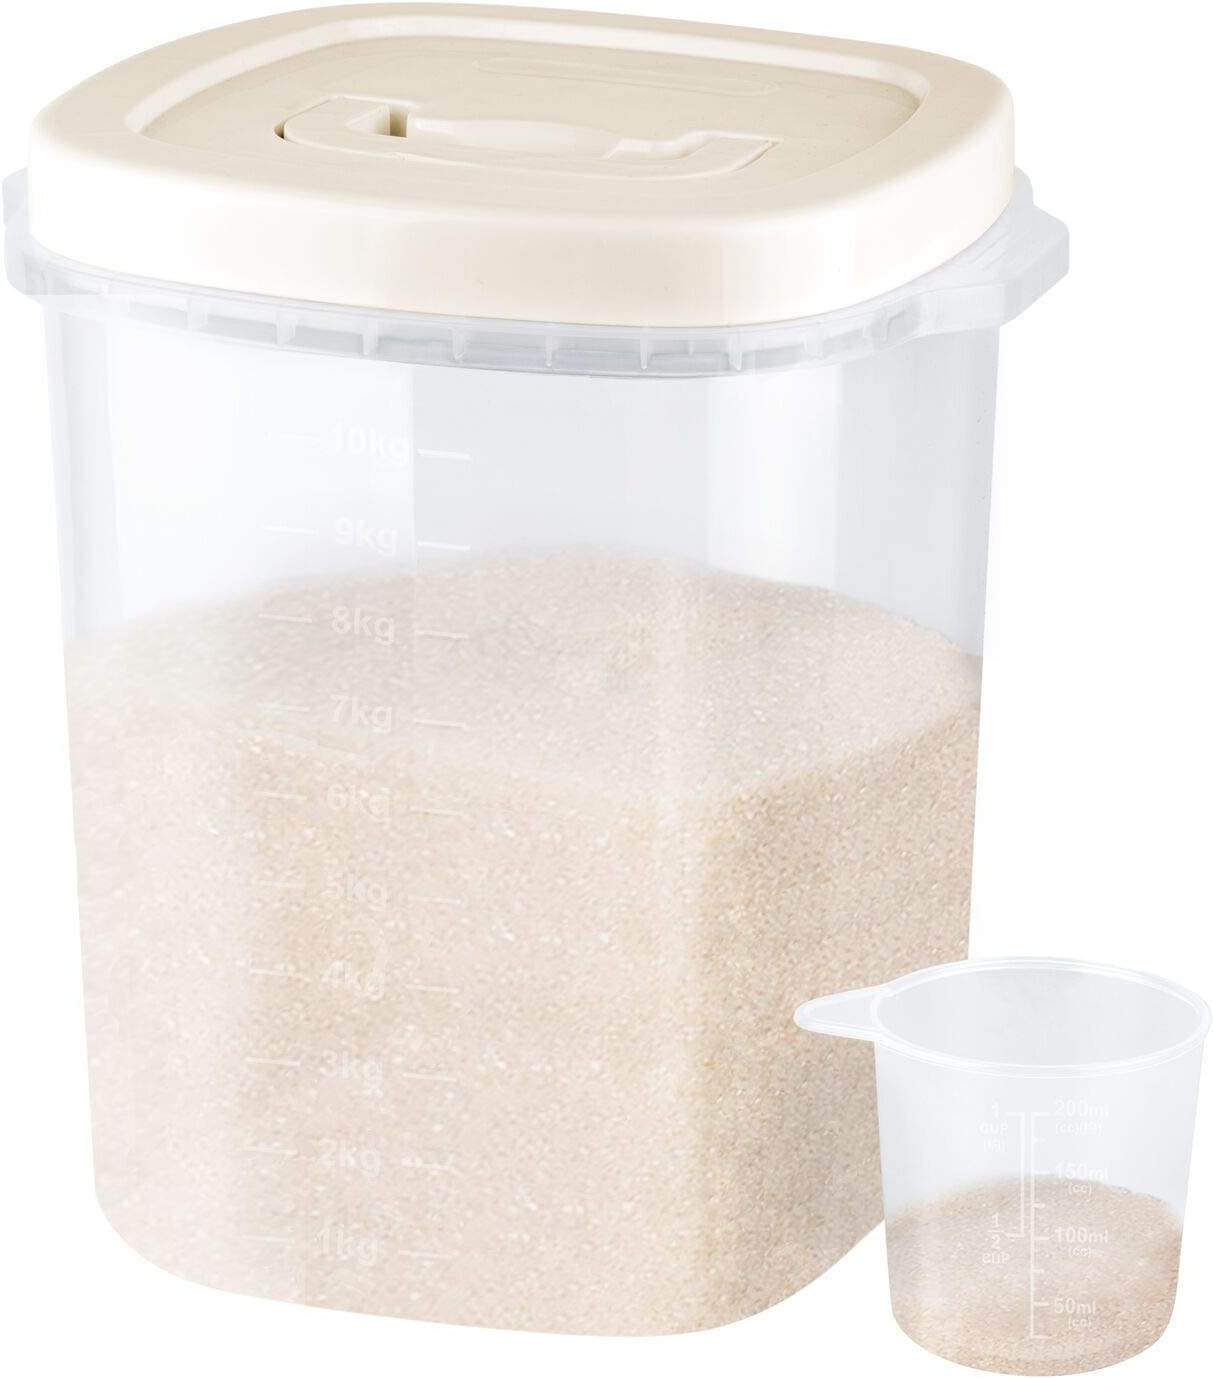 UPPETLY Large Airtight Food Storage Container Bin, 20-lb Dry Food Rice Container with Lid-Lock Handle and Measuring Cup. Cereal, Flour Dog Cat Pet Food Containers